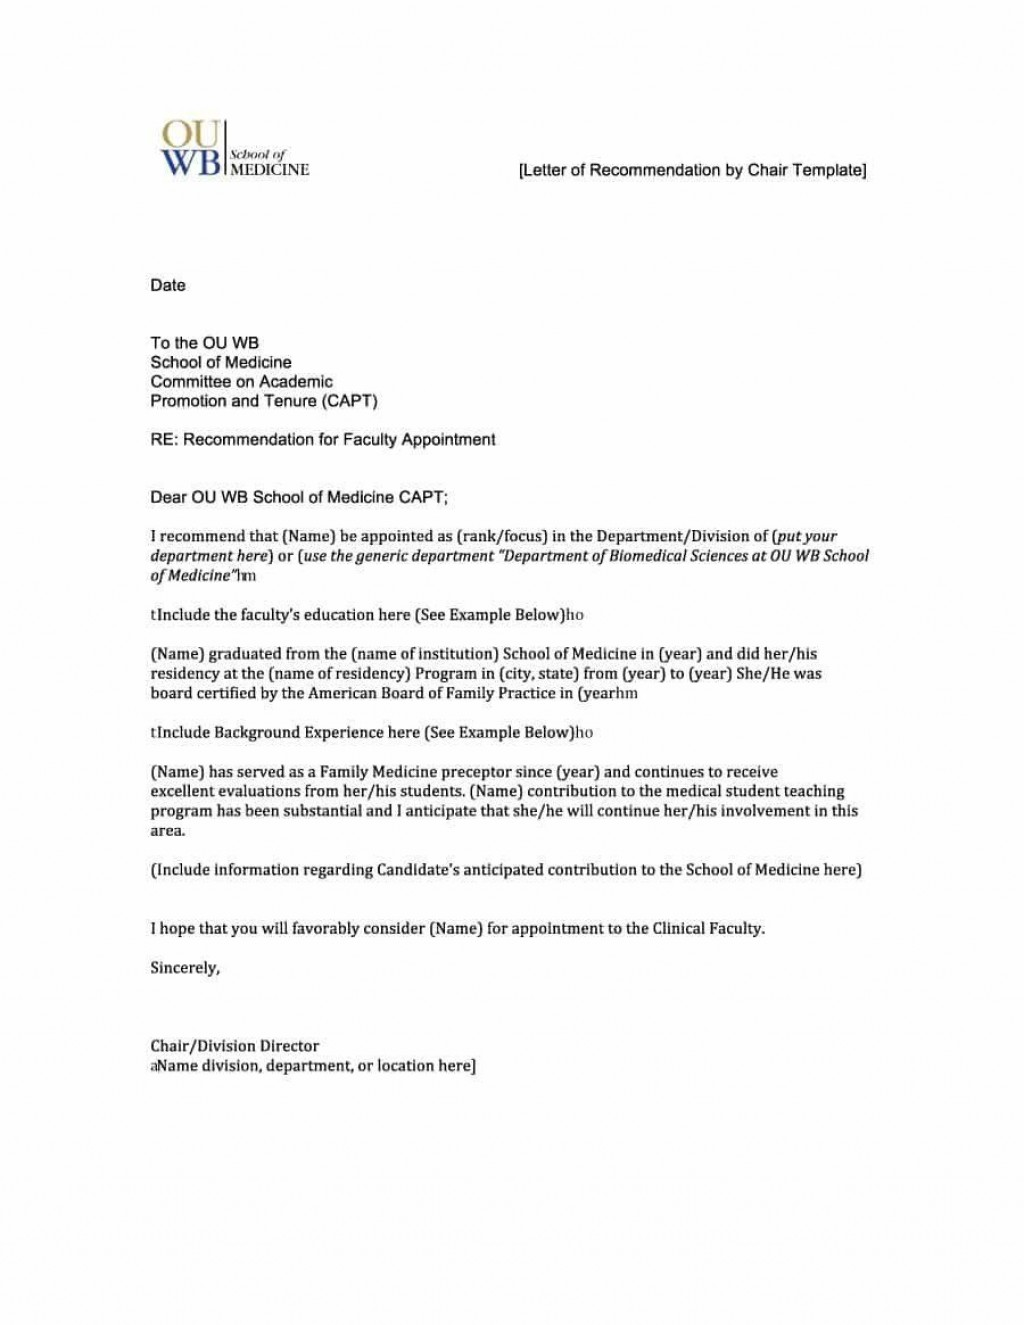 005 Stunning Letter Or Recommendation Template Photo  Of For Scholarship From Teacher Reference Employee AideLarge